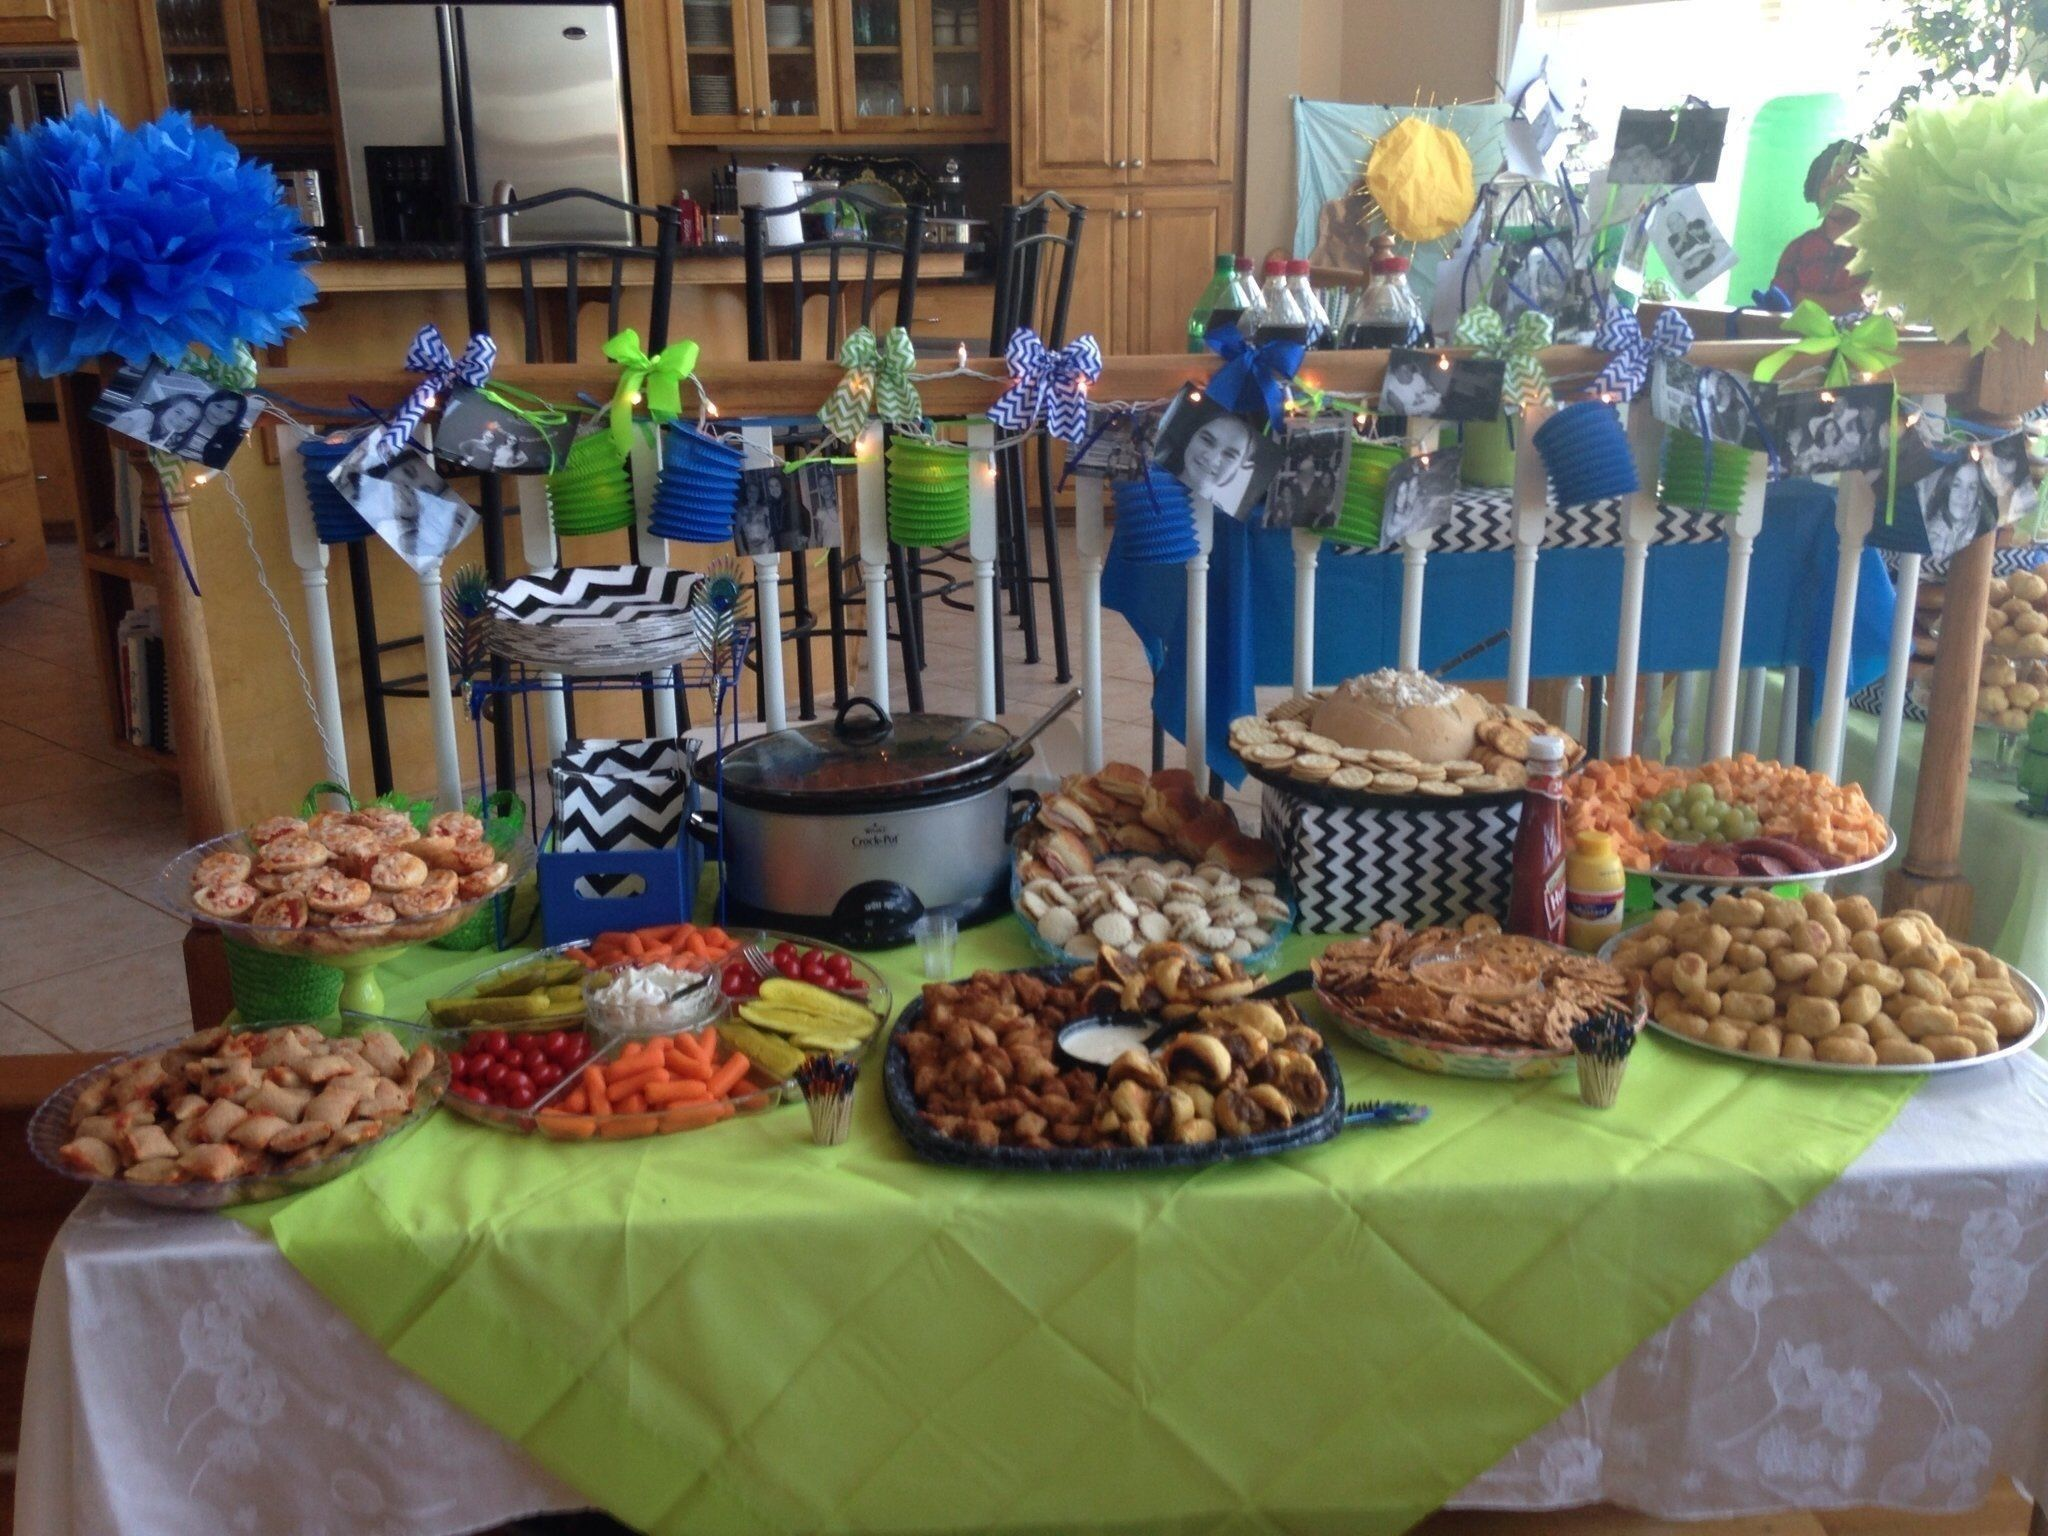 10 Year Old Boy Birthday Party Ideas Regarding Inspiration Birthday Ideas Make 10 Year O In 2020 Birthday Party For Teens Boy Birthday Parties Fun Birthday Party